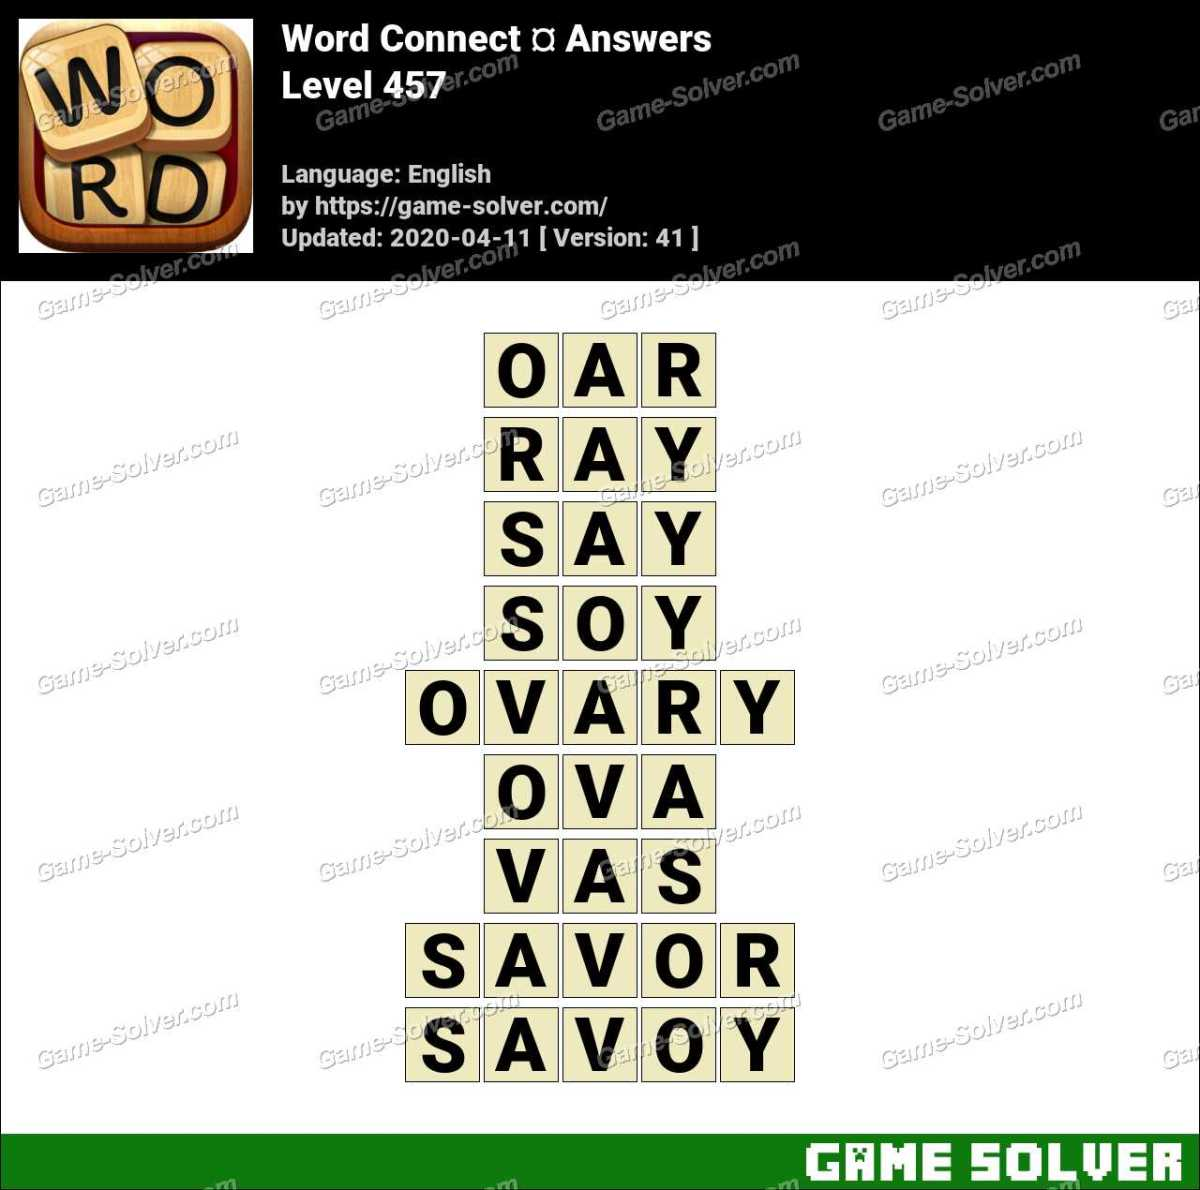 Word Connect Level 457 Answers